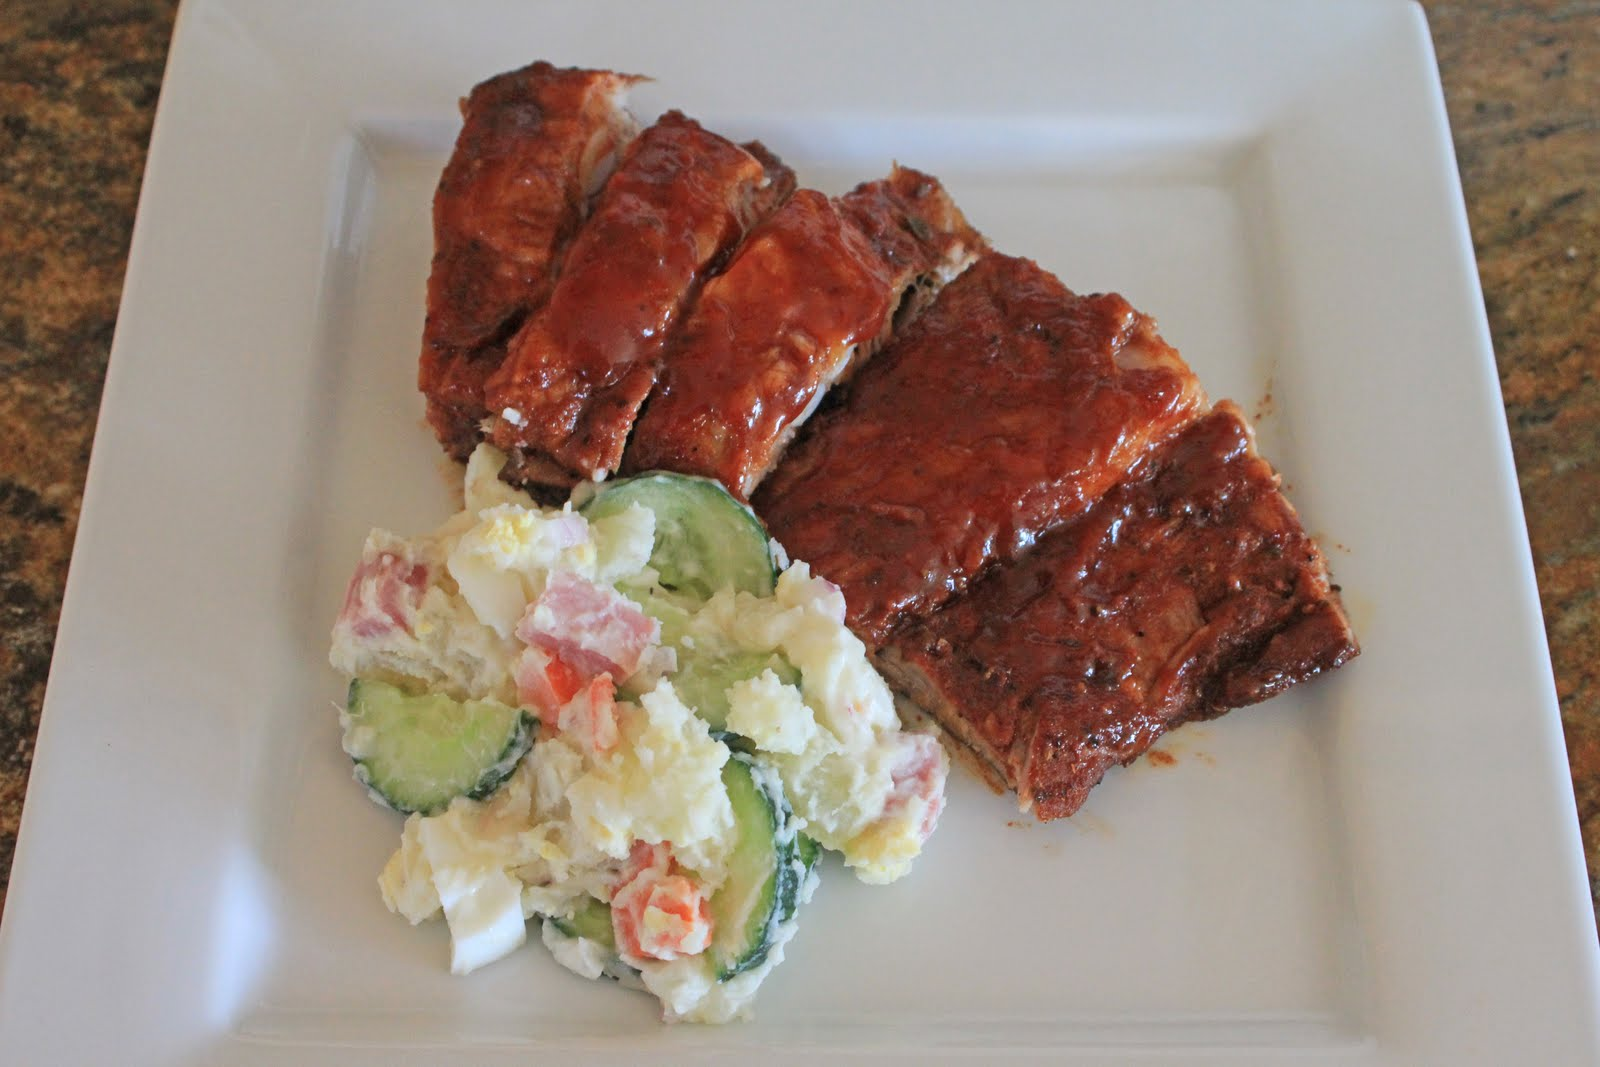 ... : Oven-Roasted Spare Ribs with Southwestern Spice Rub and Beer